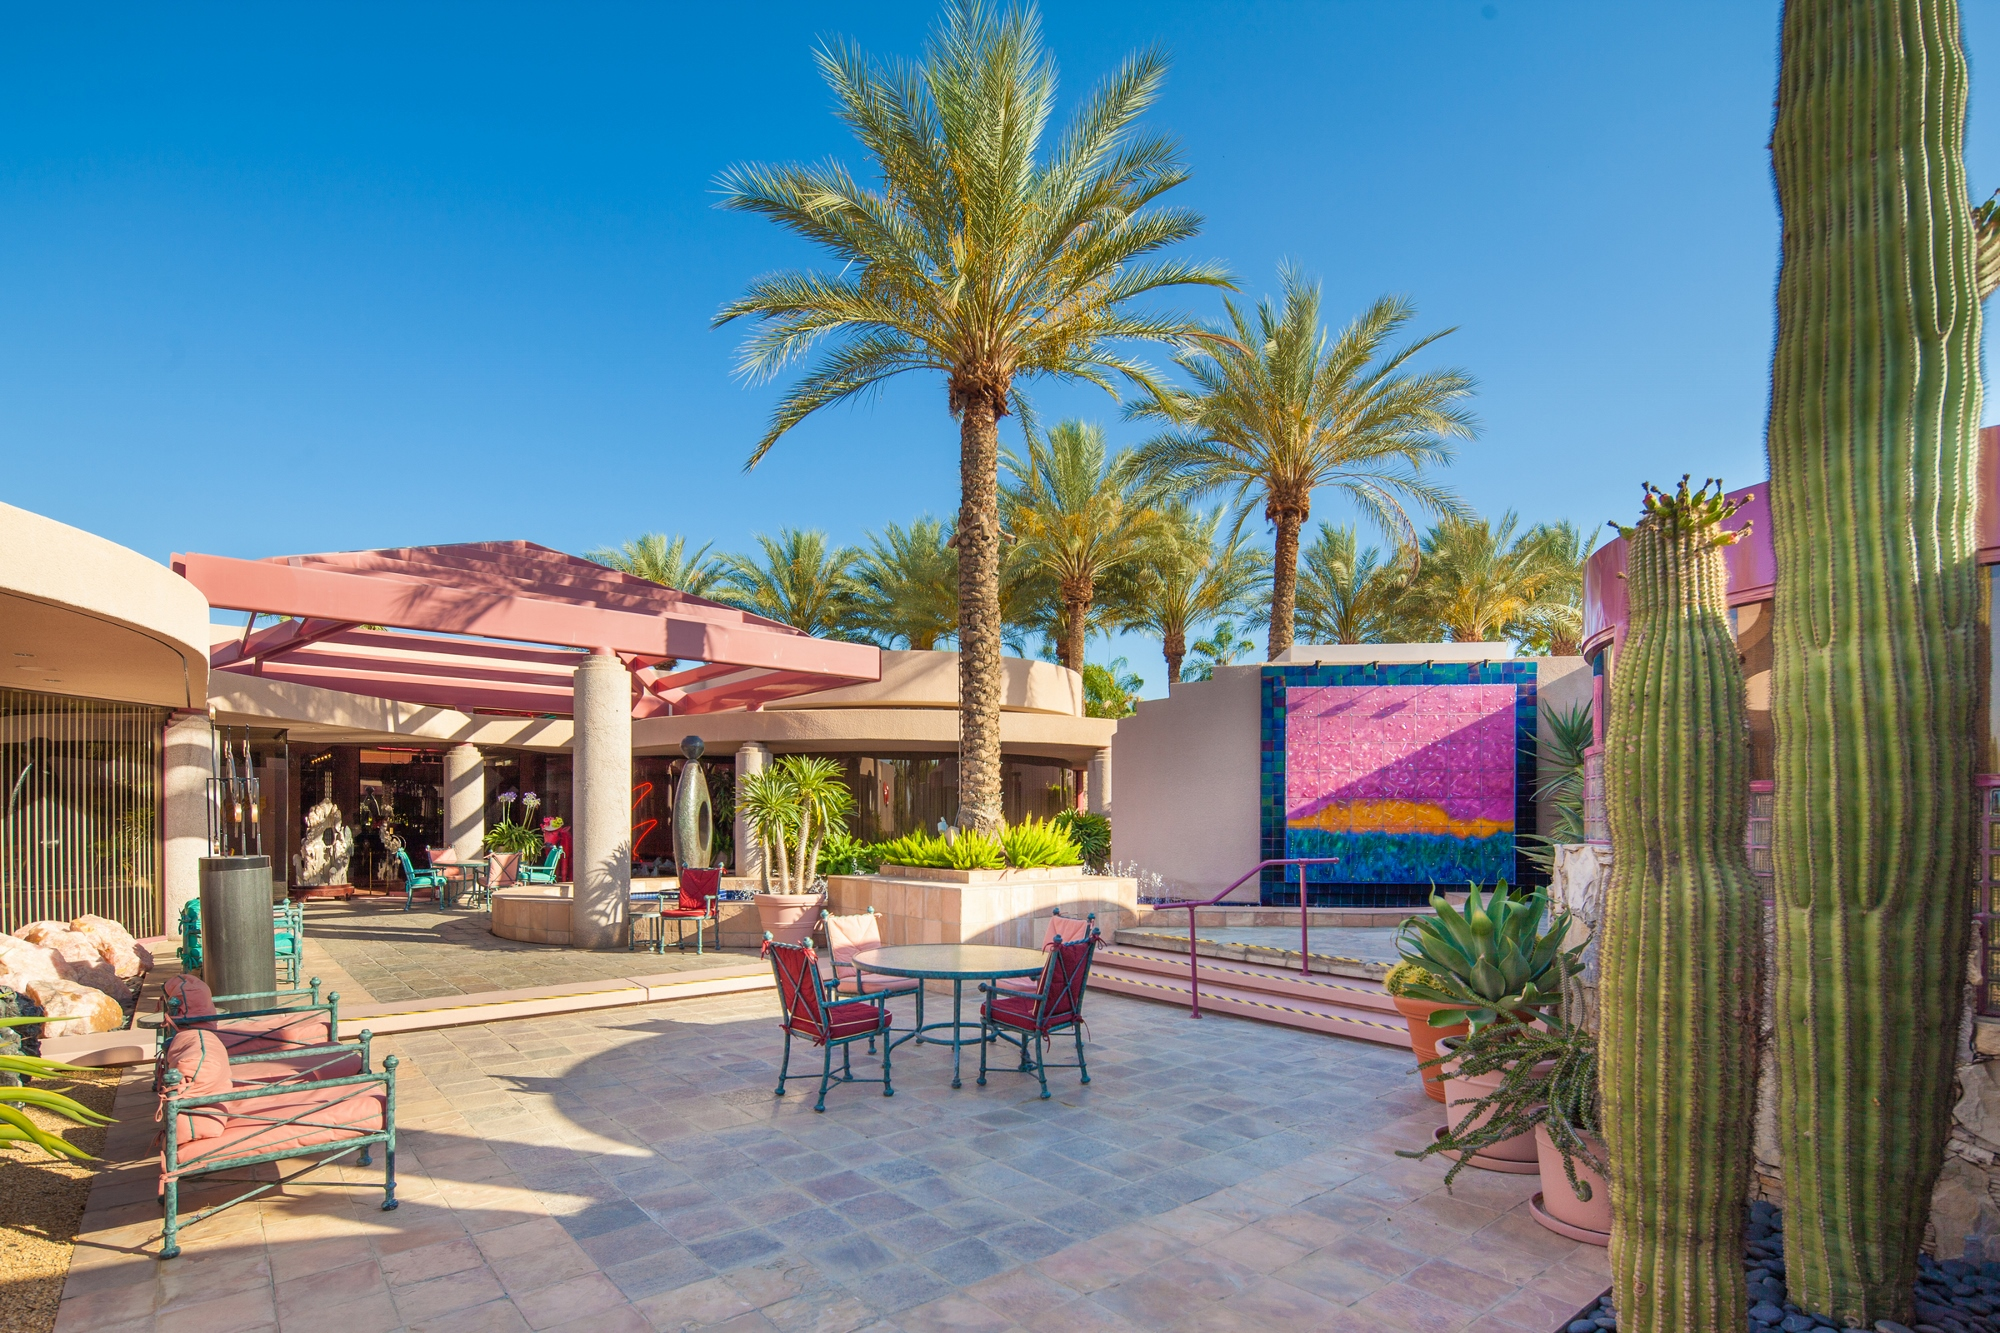 Additional photo for property listing at 74380 Palo Verde Drive  Indian Wells, 加利福尼亚州 92210 美国